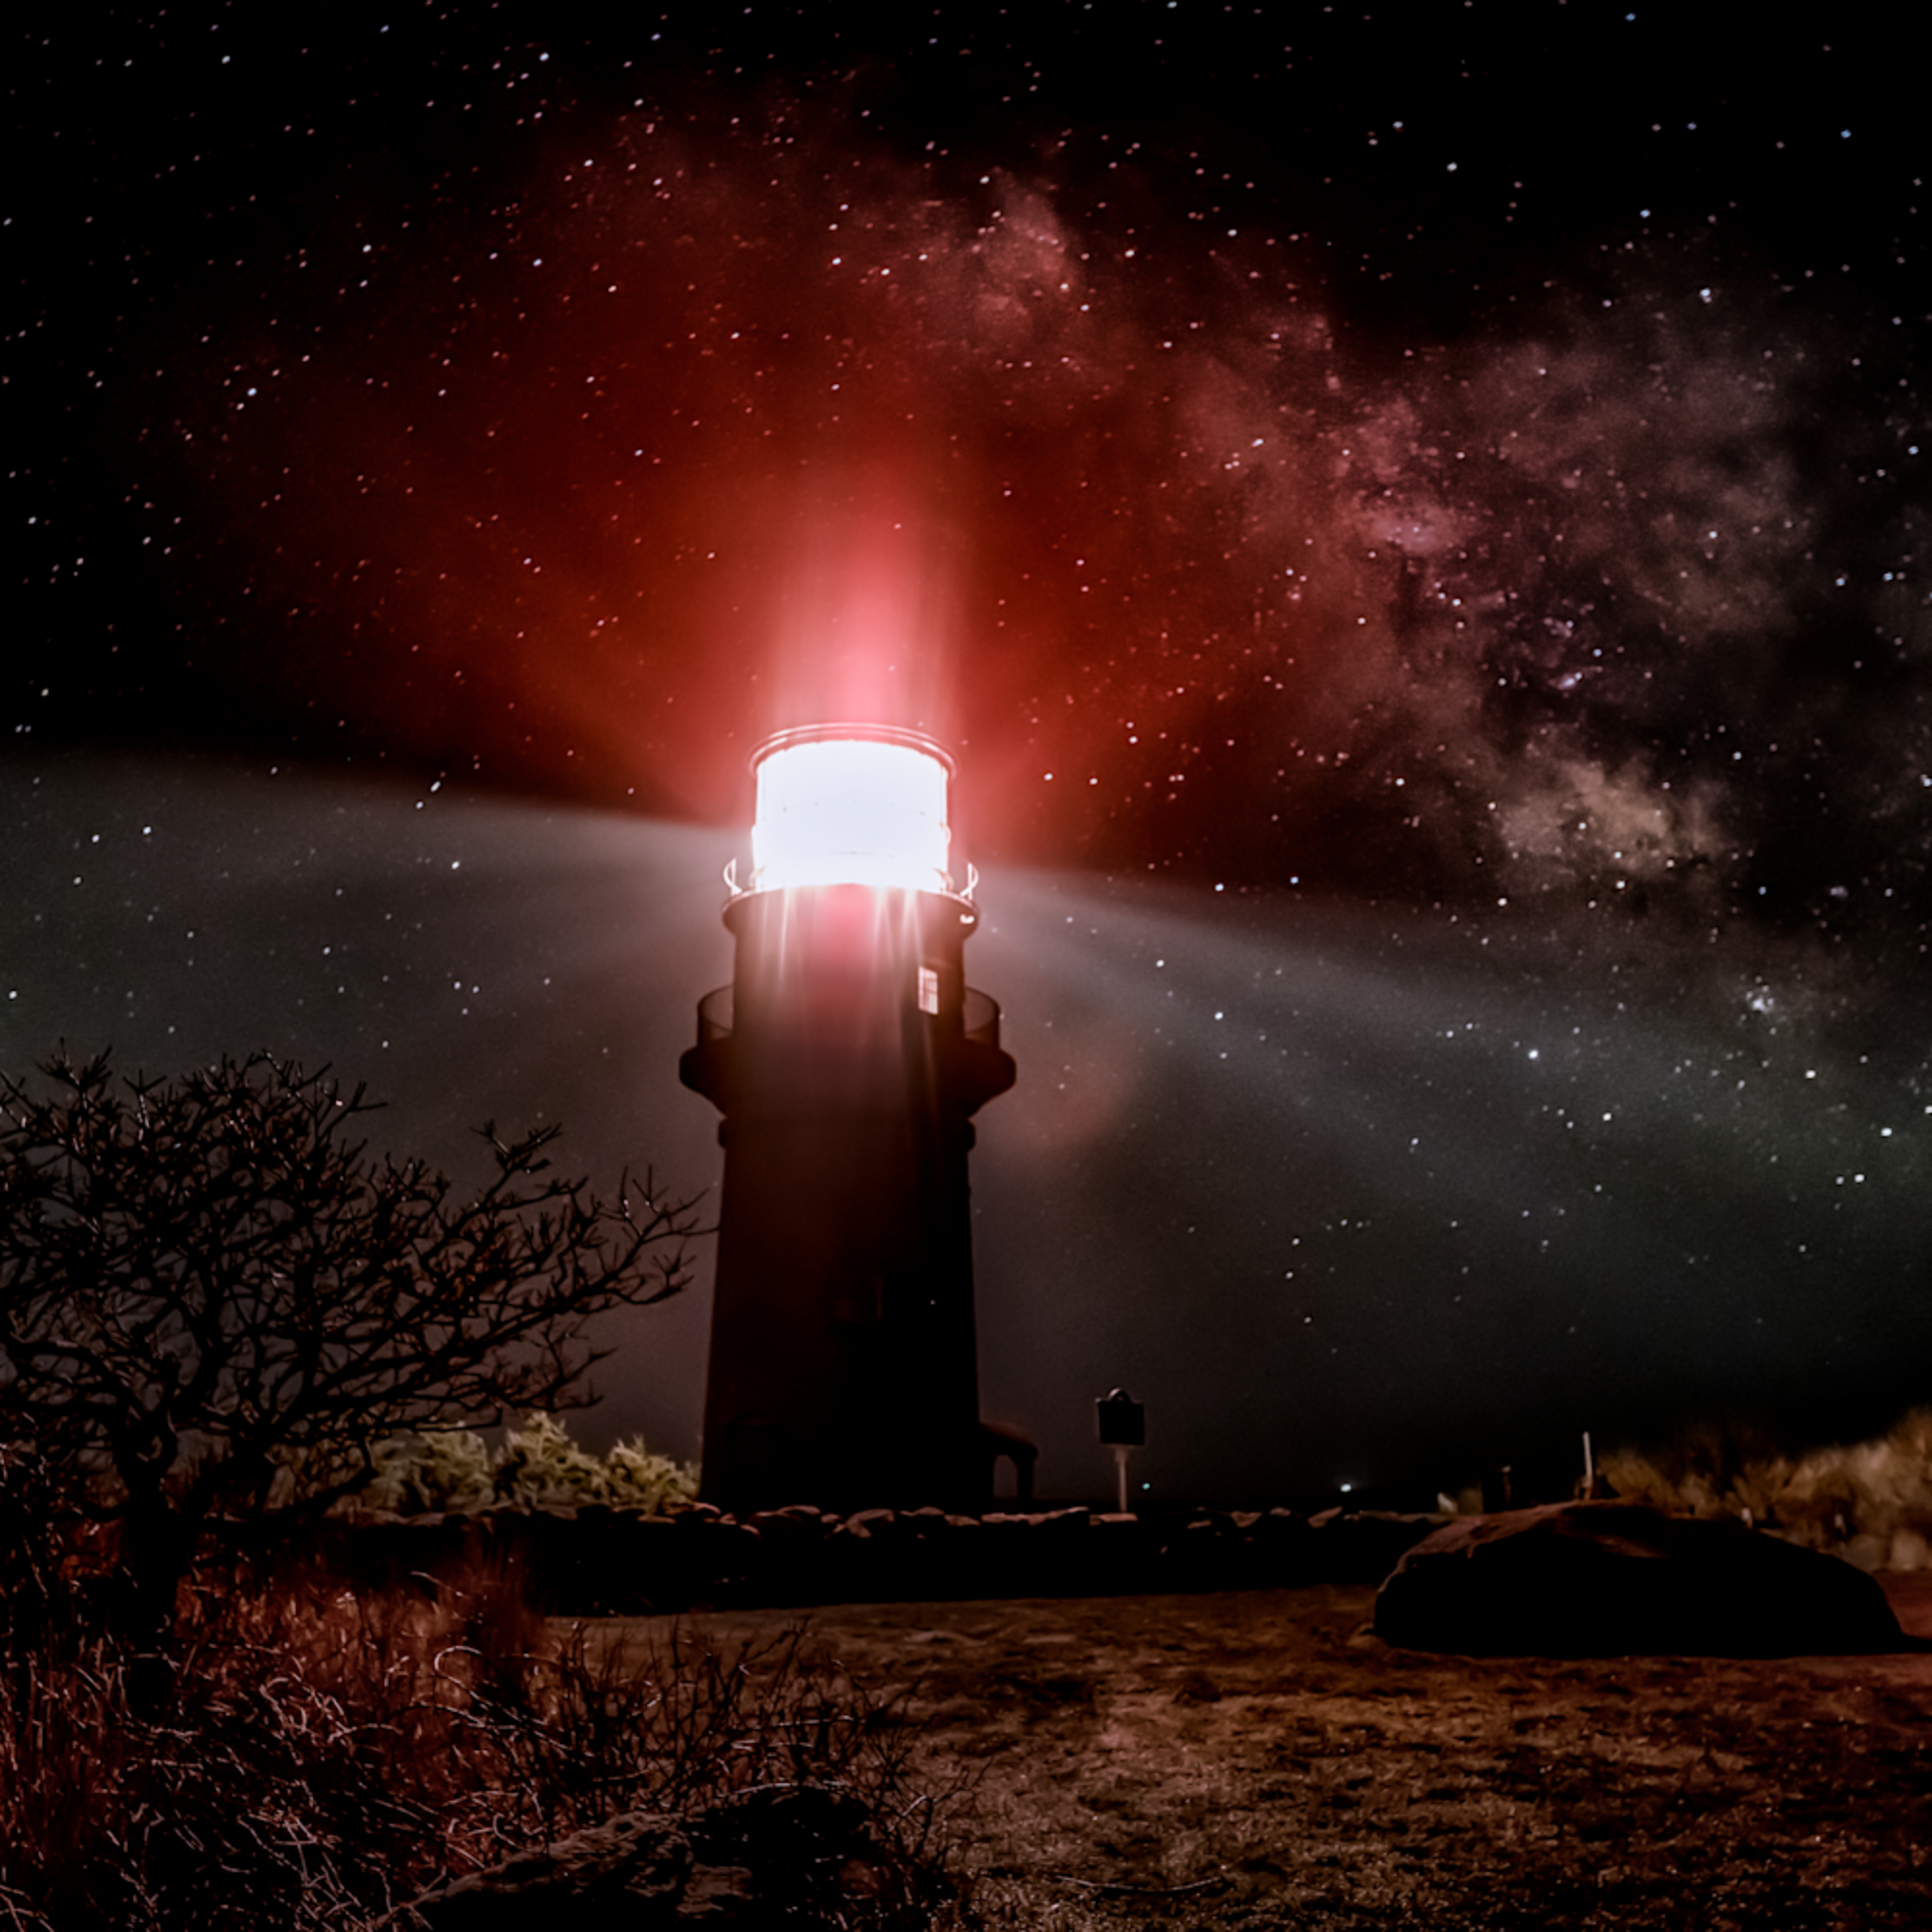 Gay head light milky way qjtmus